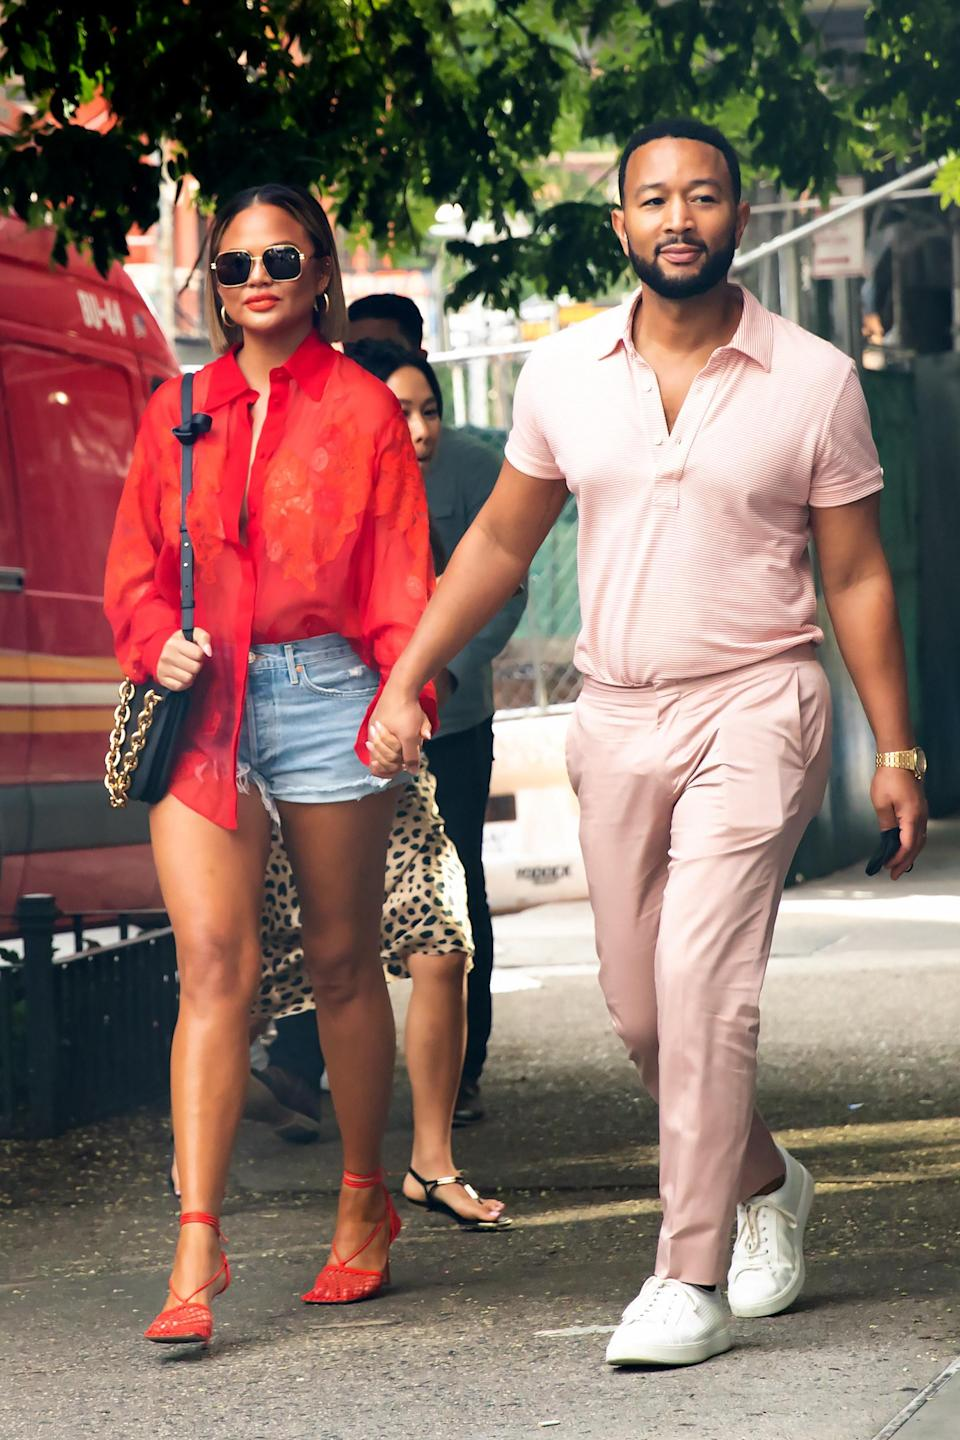 """<div><p>""""I don't really feel like I fully processed Jack and now that I don't have the alcohol to numb it away, things are just…there, waiting to be acknowledged,"""" she <a href=""""https://www.buzzfeednews.com/article/elliewoodward/chrissy-teigen-struggling-process-loss-of-baby-going-sober"""" rel=""""nofollow noopener"""" target=""""_blank"""" data-ylk=""""slk:wrote"""" class=""""link rapid-noclick-resp"""">wrote</a> on Instagram.</p></div><span> Mega / GC Images via Getty Images</span>"""